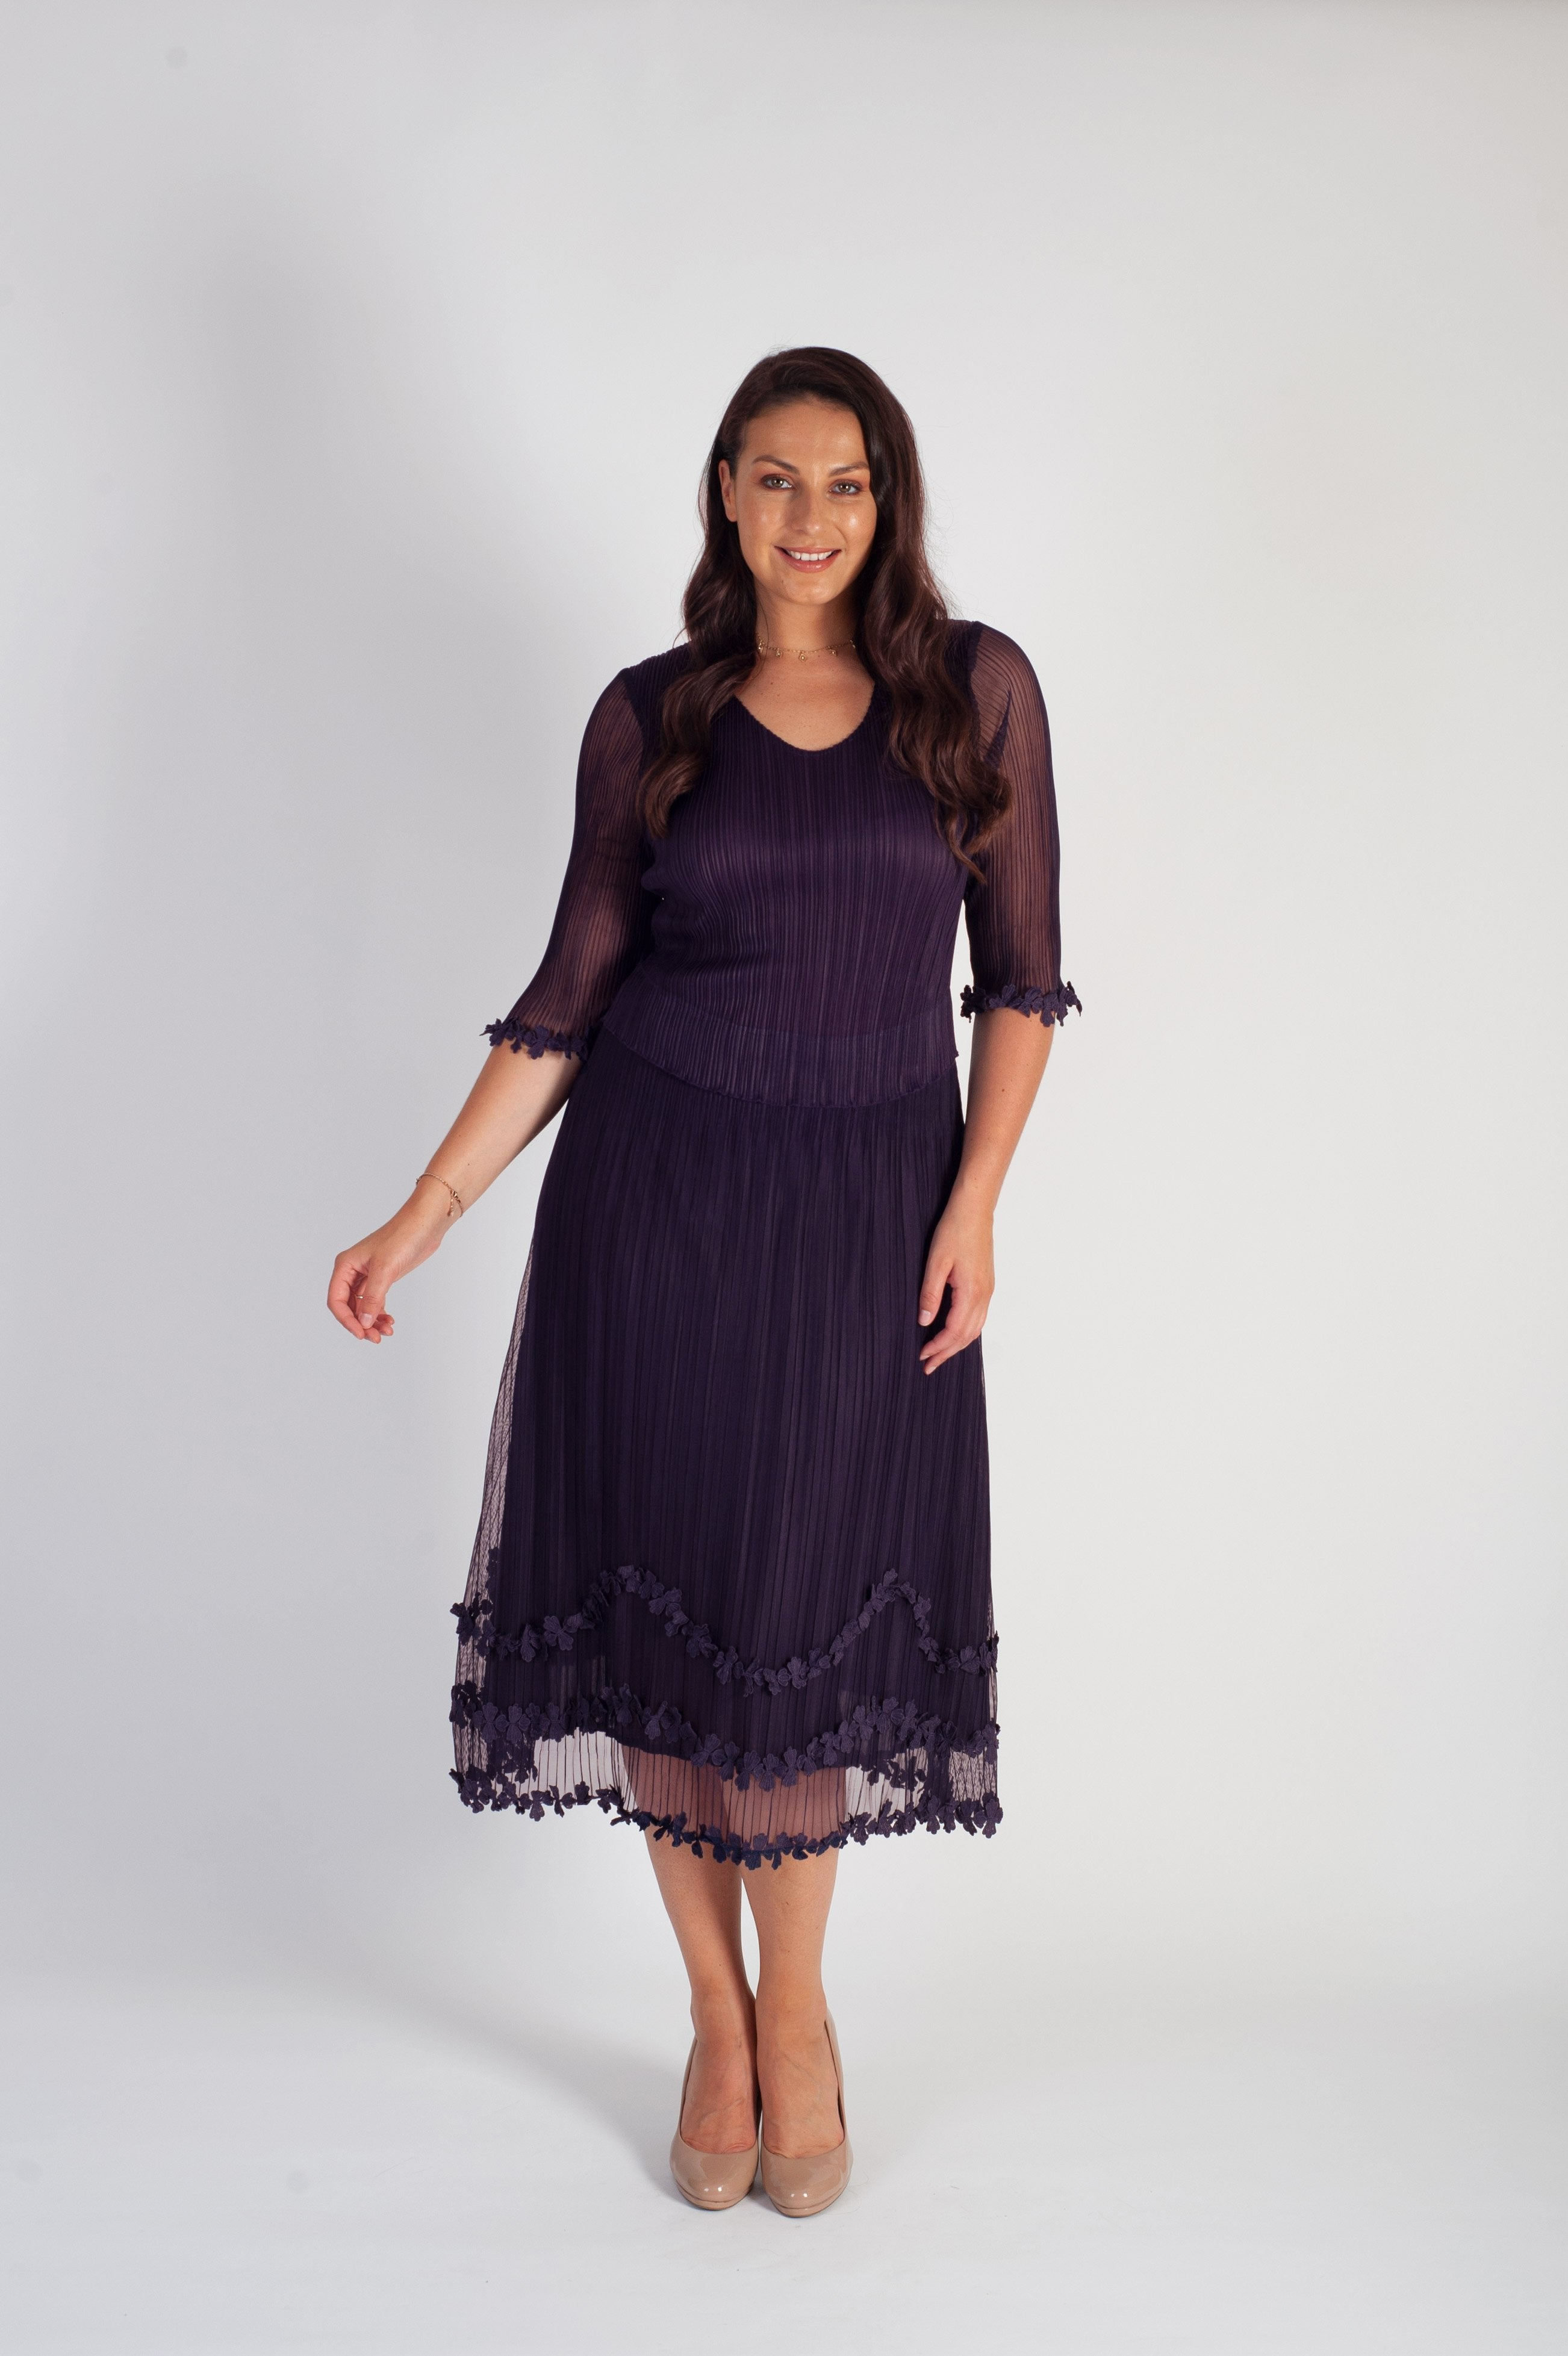 Grape Mock Layer Daisy Chain Trim Crush Pleat Mesh Dress